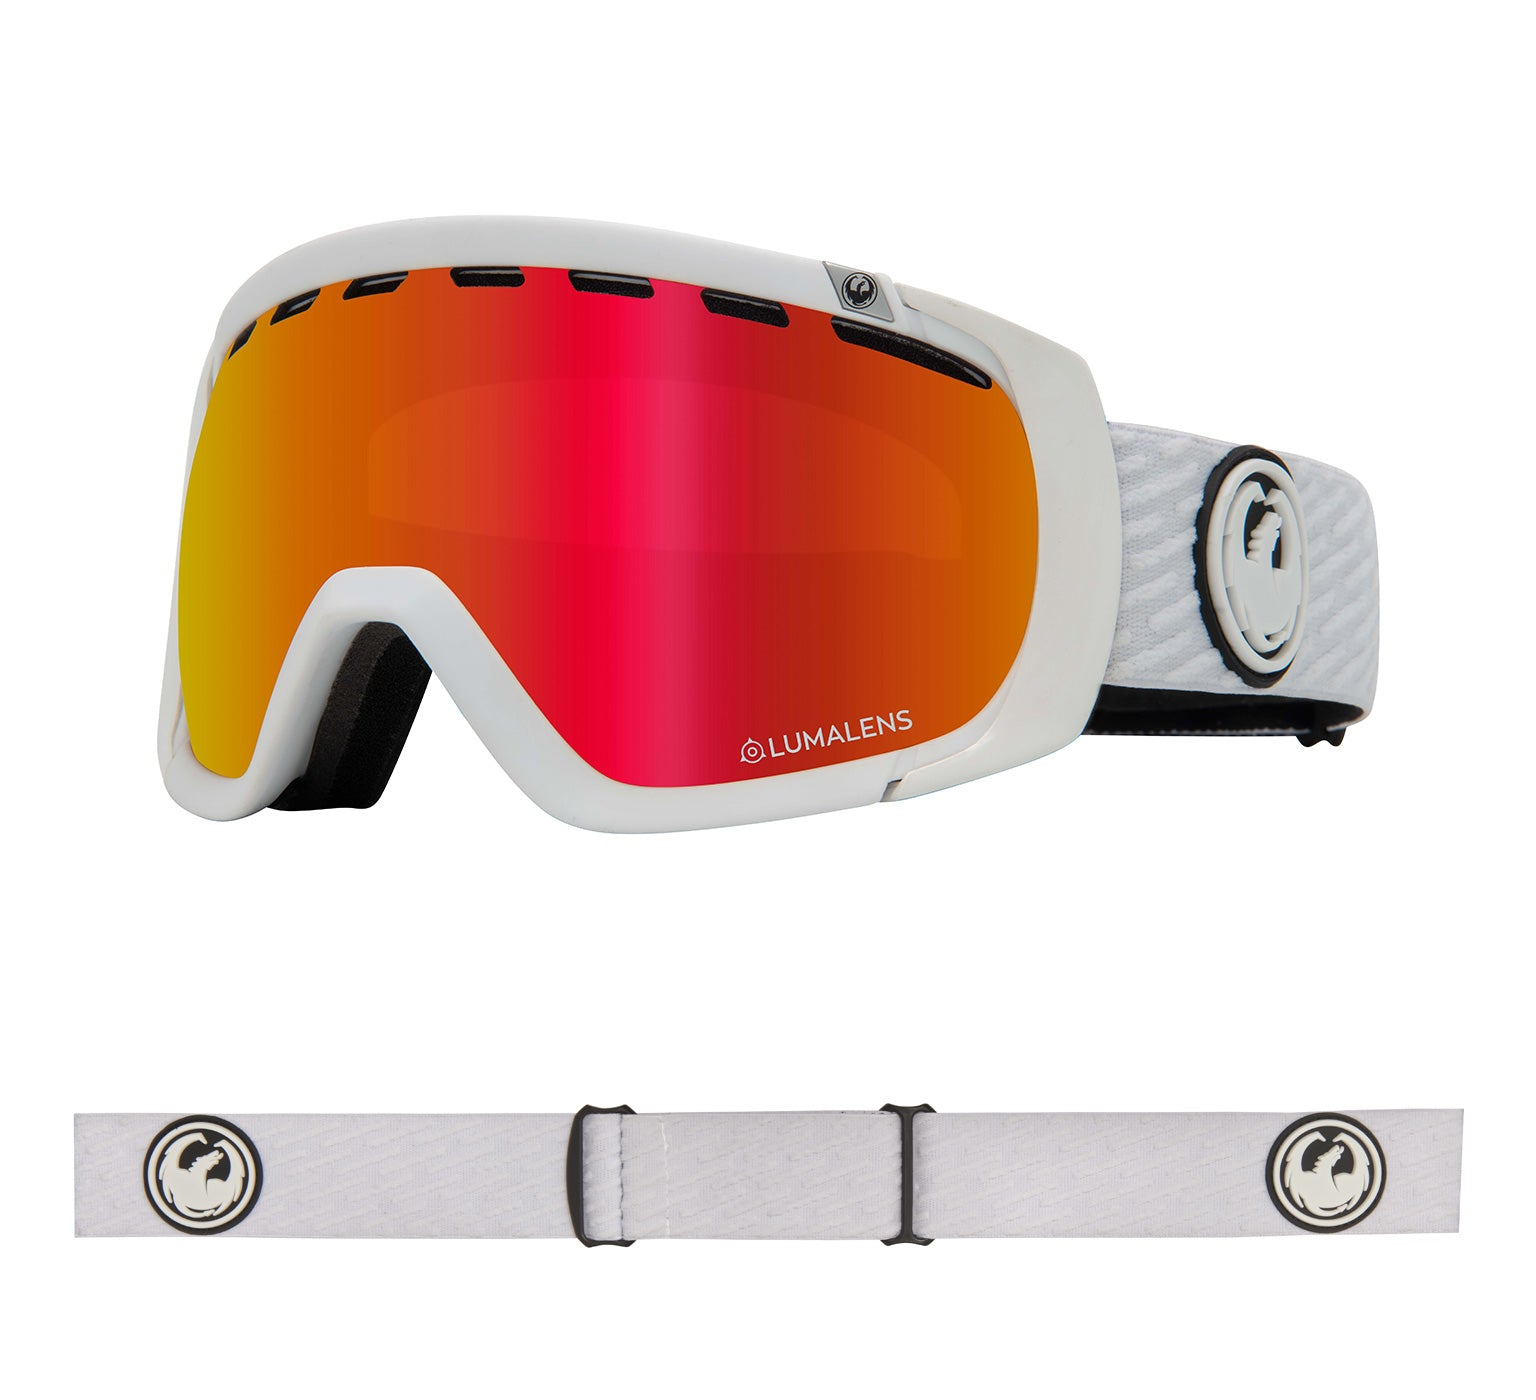 Rogue - PK White with Lumalens Red Ionized + Lumalens Pink Ionized Lens